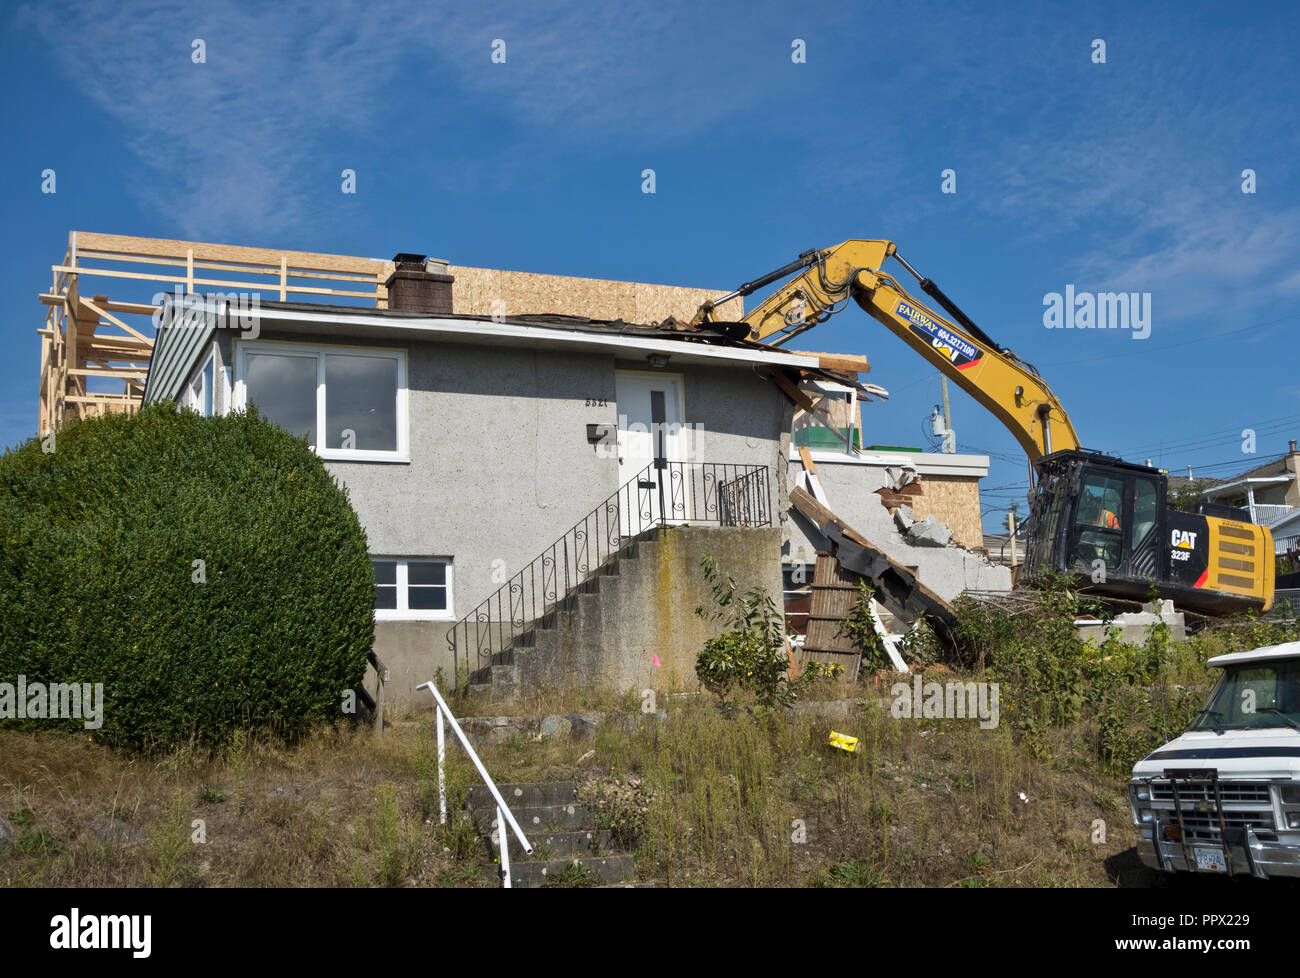 A 1950s bungalow being demolished in a Metro Vancouver suburb, with another home under construction next door. - Stock Image